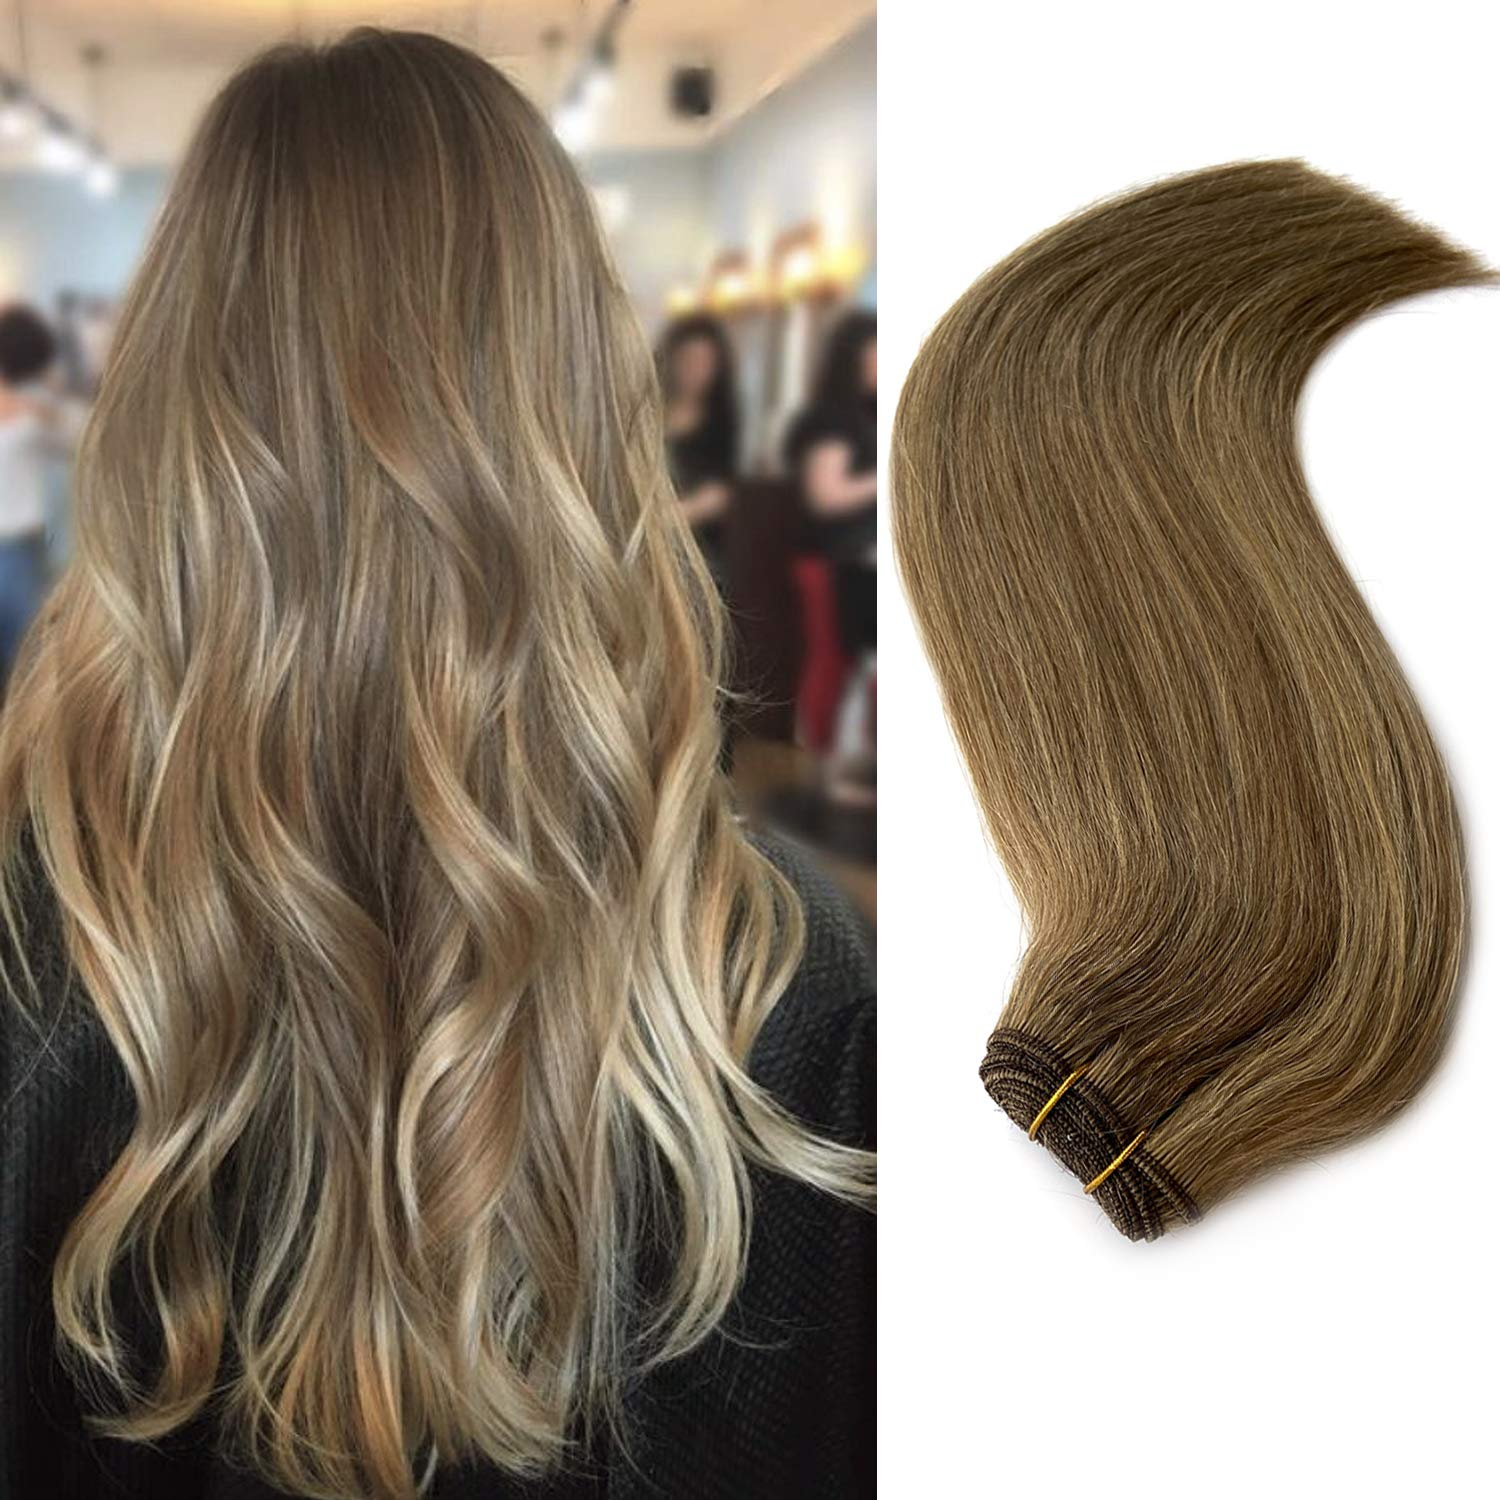 Human Hair Weft Sew in Hair Extensions Light Brown to Beige/Ash Blonde  Highlights Brazilian Virgin Straight Human Hair Hand Tied Weave Extensions  Sew ...